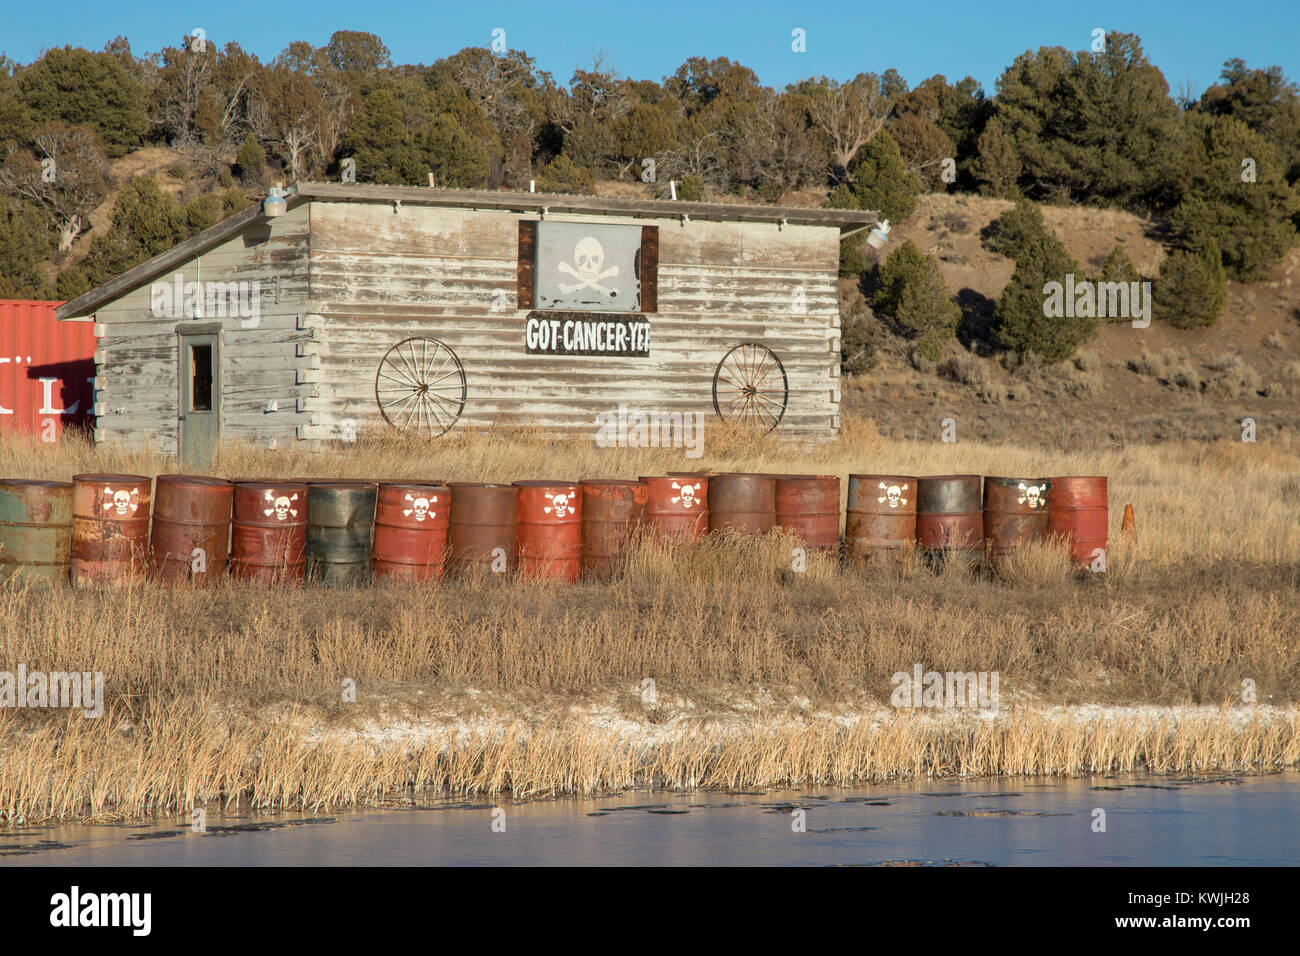 Mancos, Colorado - A closed Sinclair gas station/convenience store with leaking underground gasoline storage tanks. - Stock Image